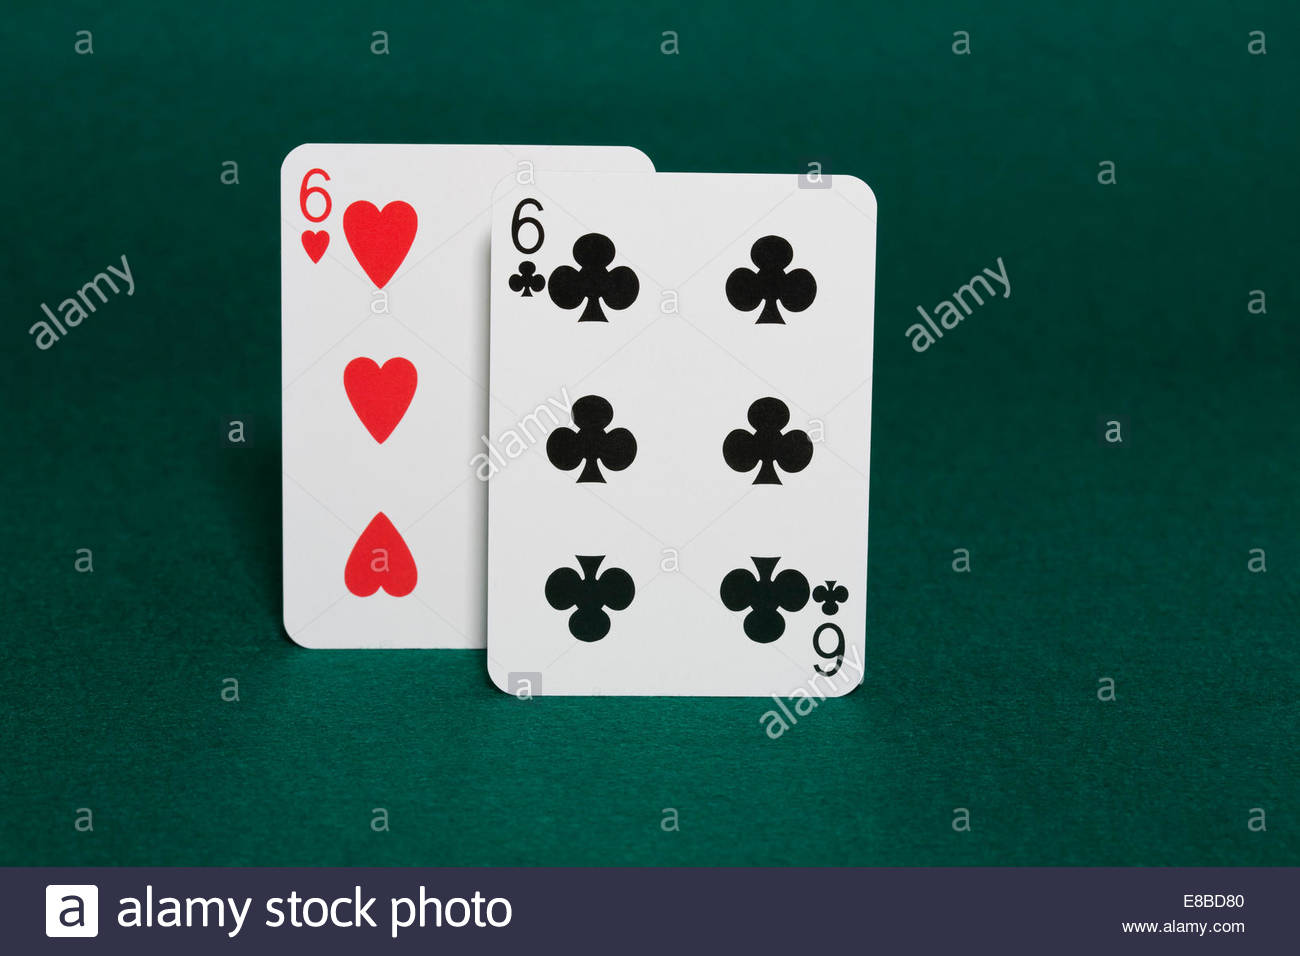 Pair of sixes poker playing roulette online for money